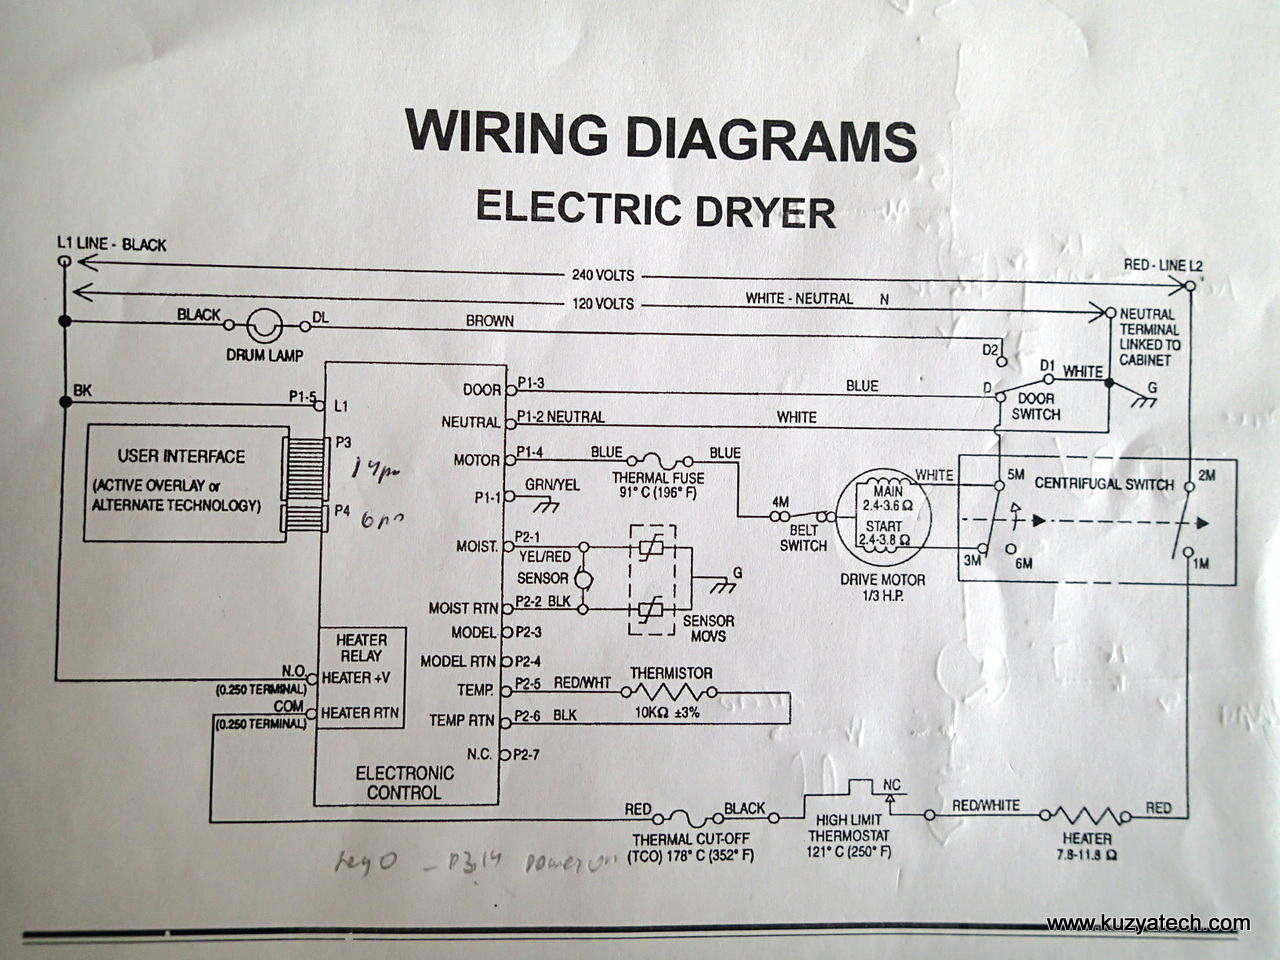 wiring diagram for whirlpool electric dryer – yhgfdmuor, Wiring diagram